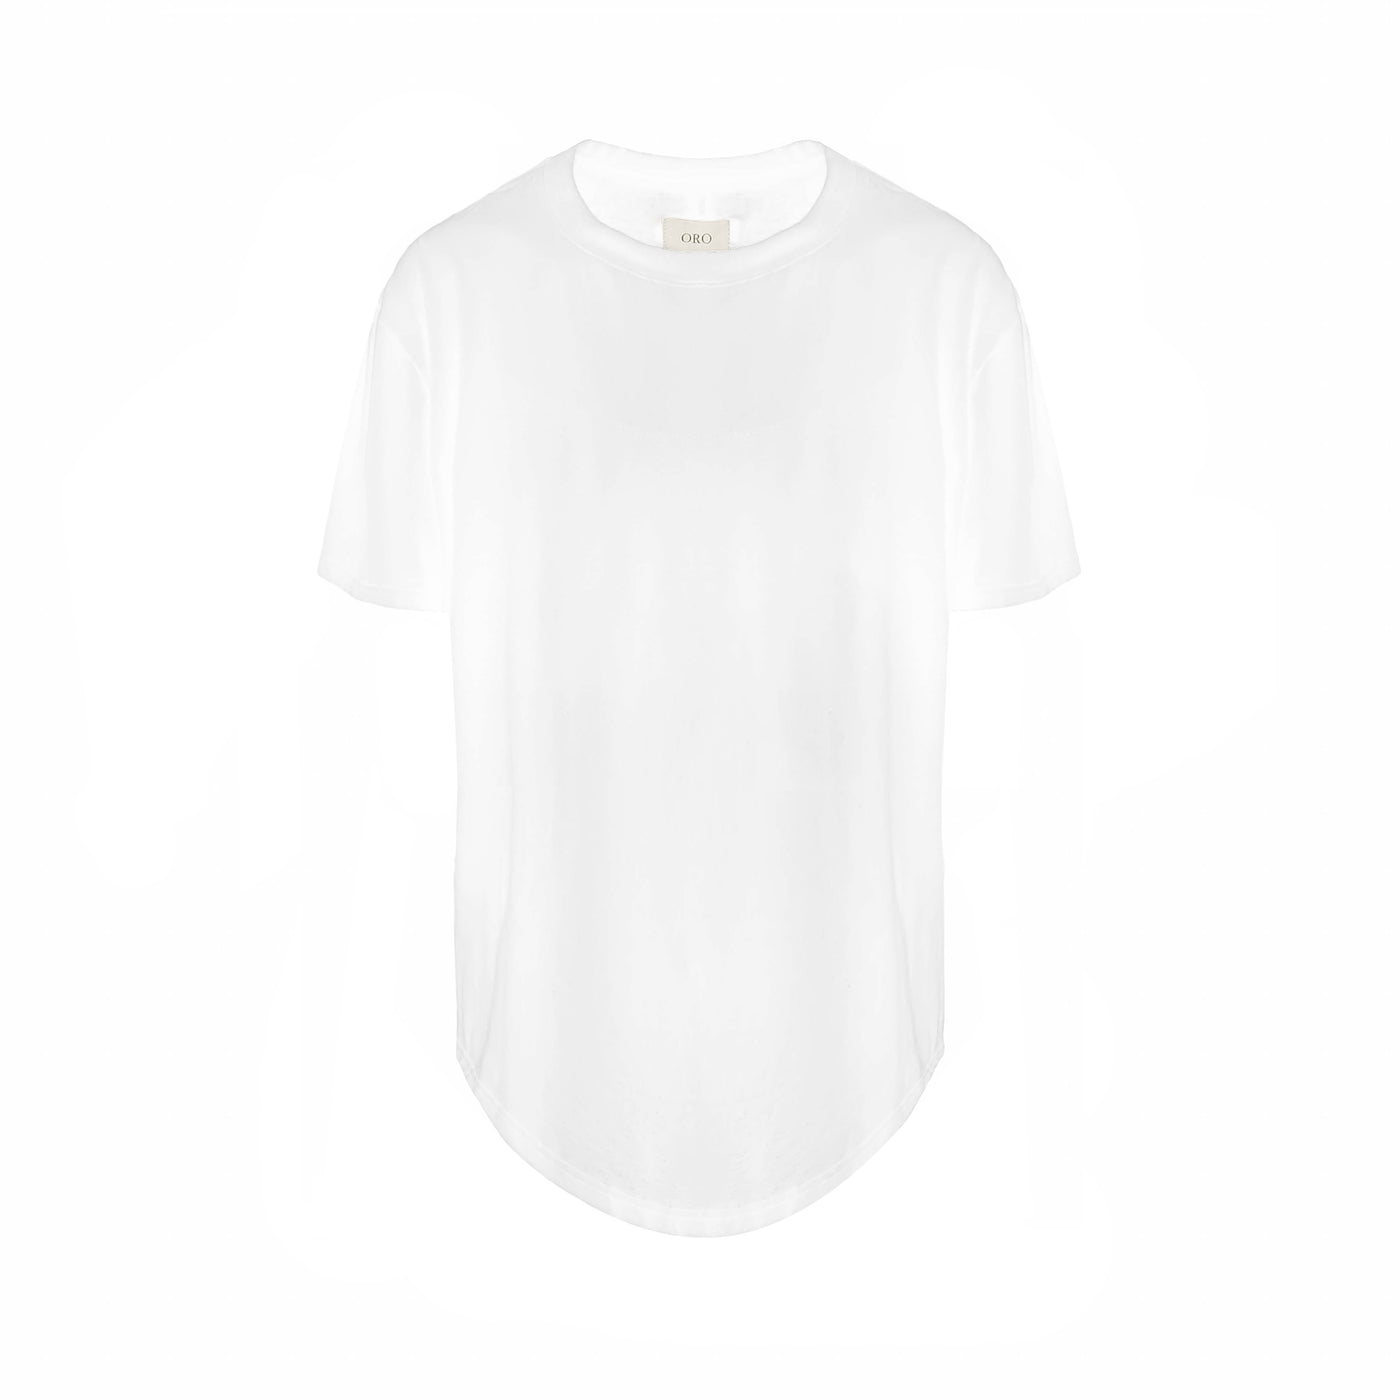 THE OMNI SCALLOP TEE